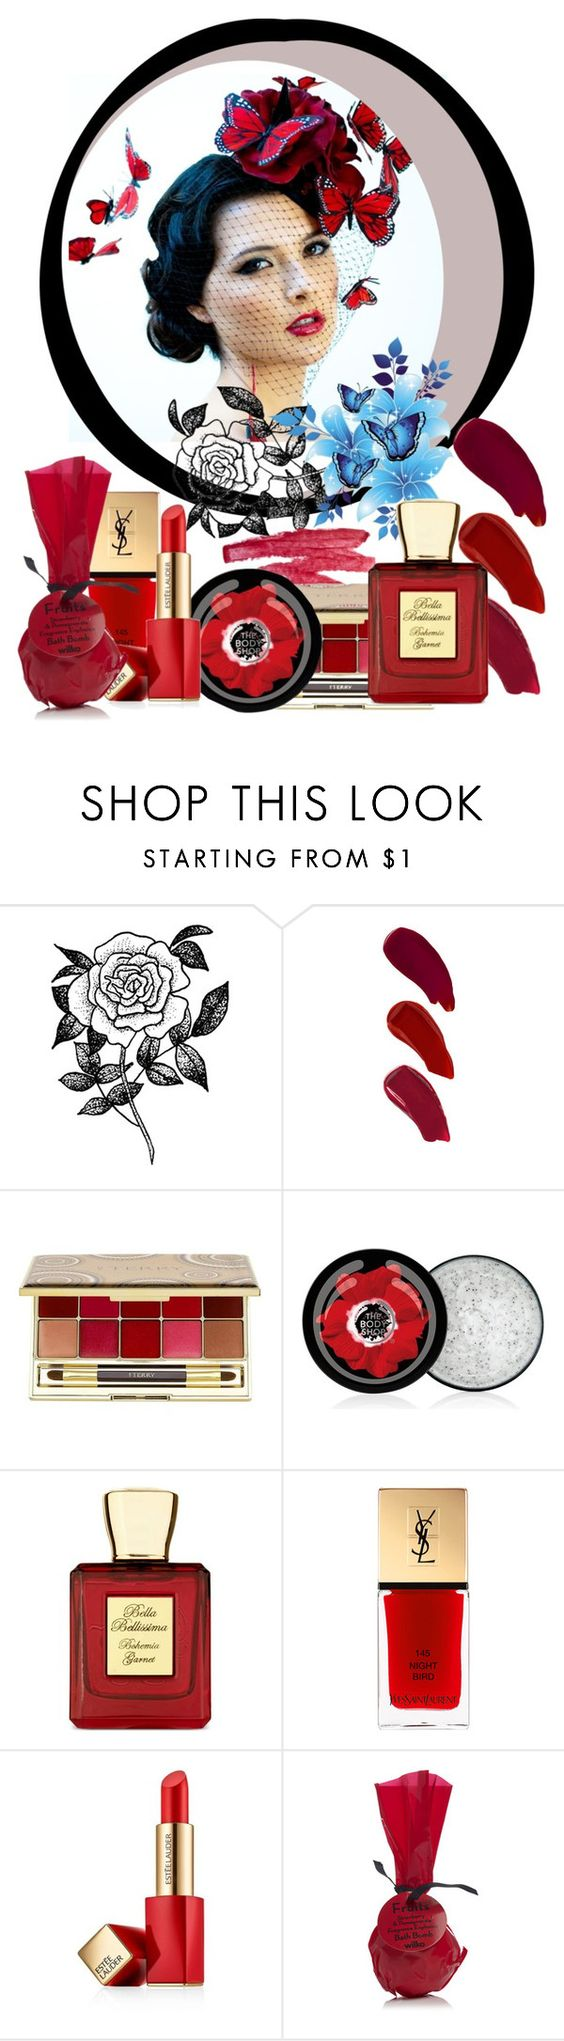 """Spring arrived on the wings of butterflies 2. #3."" by babysnail ❤ liked on Polyvore featuring beauty, Forever 21, Ellis Faas, Ilia, By Terry, The Body Shop, Bella Bellissima, Estée Lauder, red and YSL"